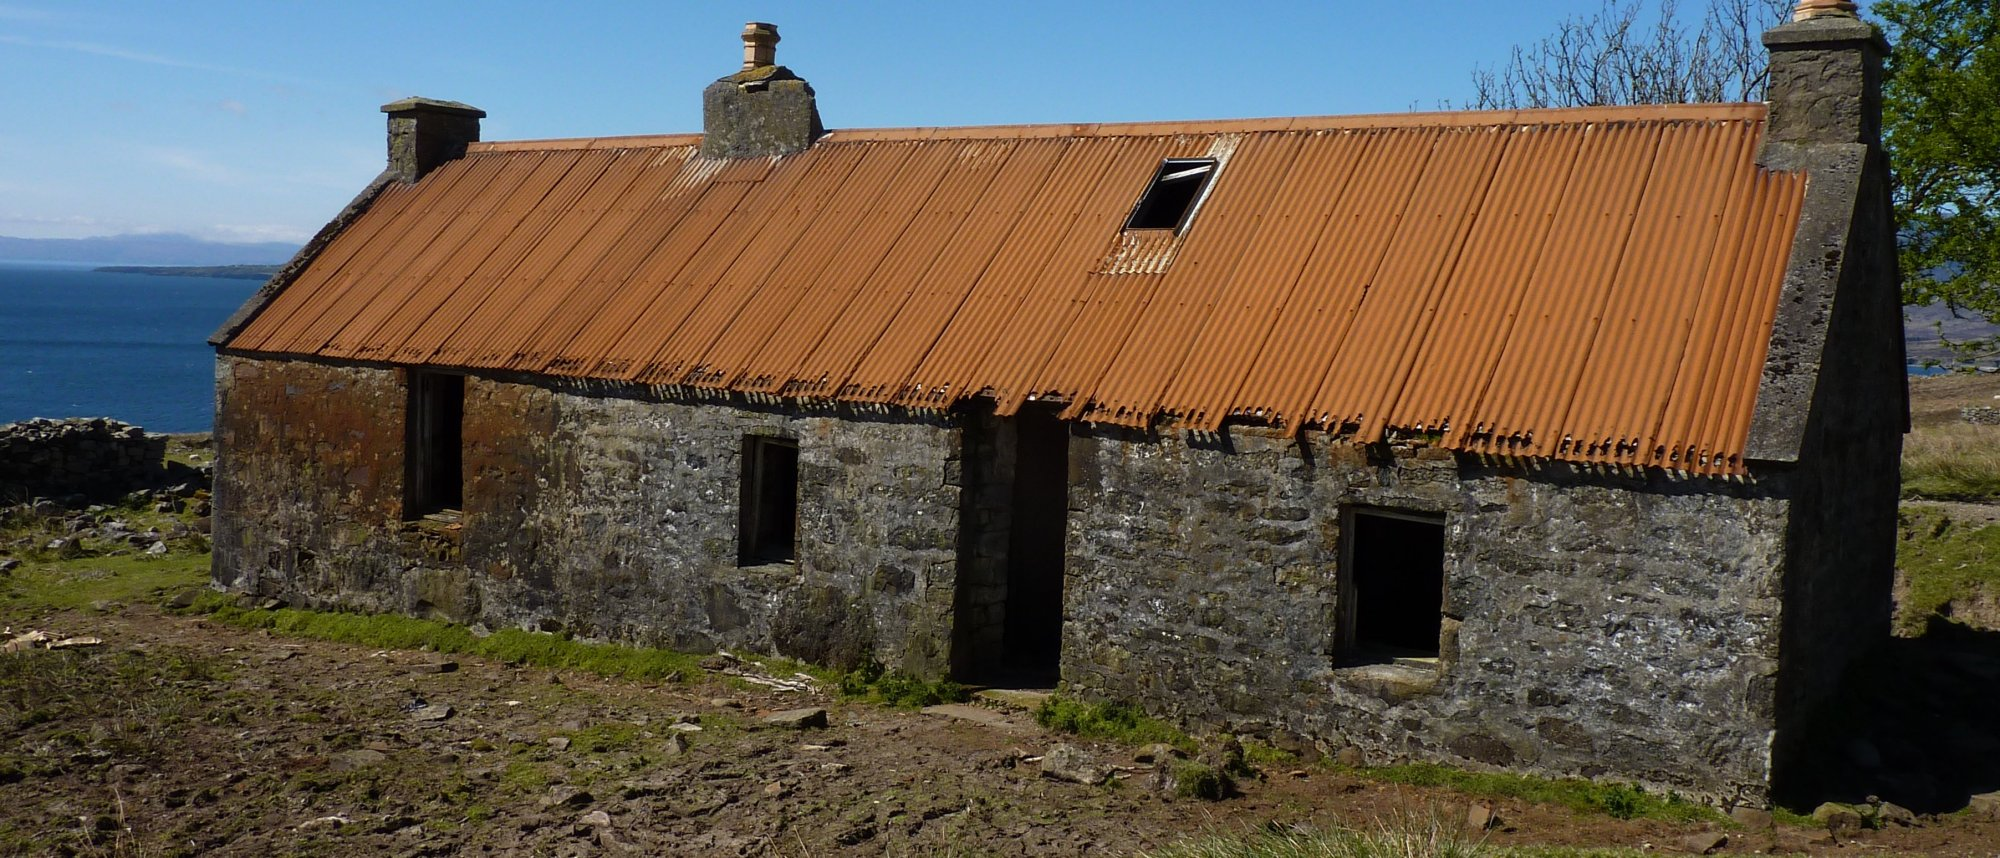 Decaying building at Suisnish, a shelter for sheep and desperate walkers